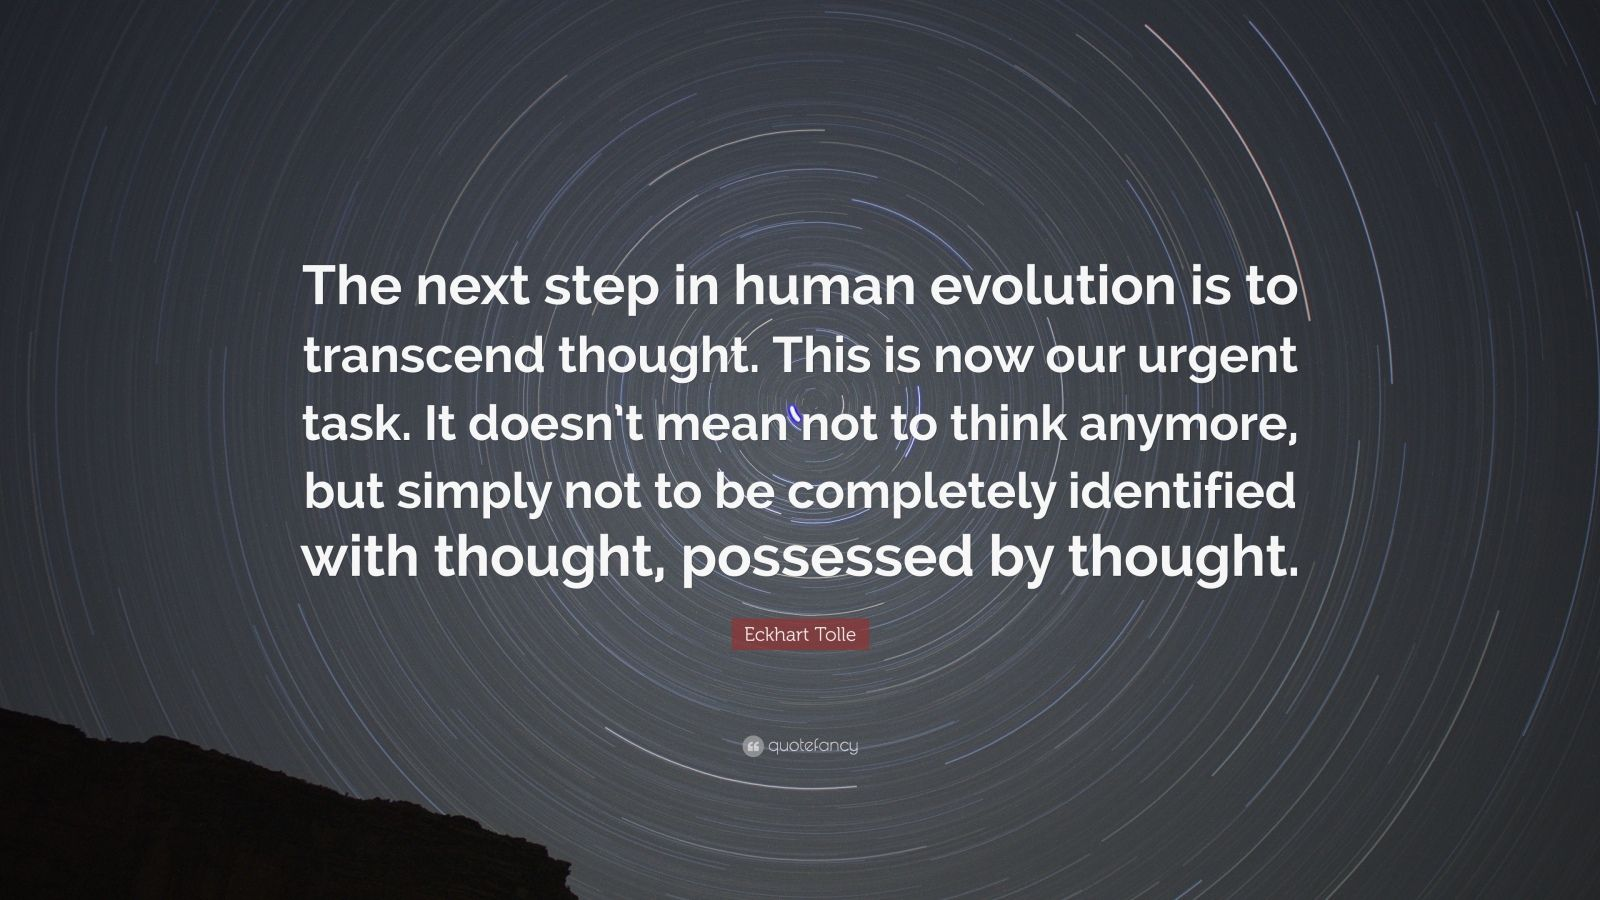 """Eckhart Tolle Quote: """"The next step in human evolution is to transcend thought. This is now our urgent task. It doesn't mean not to think anymore, but simply not to be completely identified with thought, possessed by thought."""""""